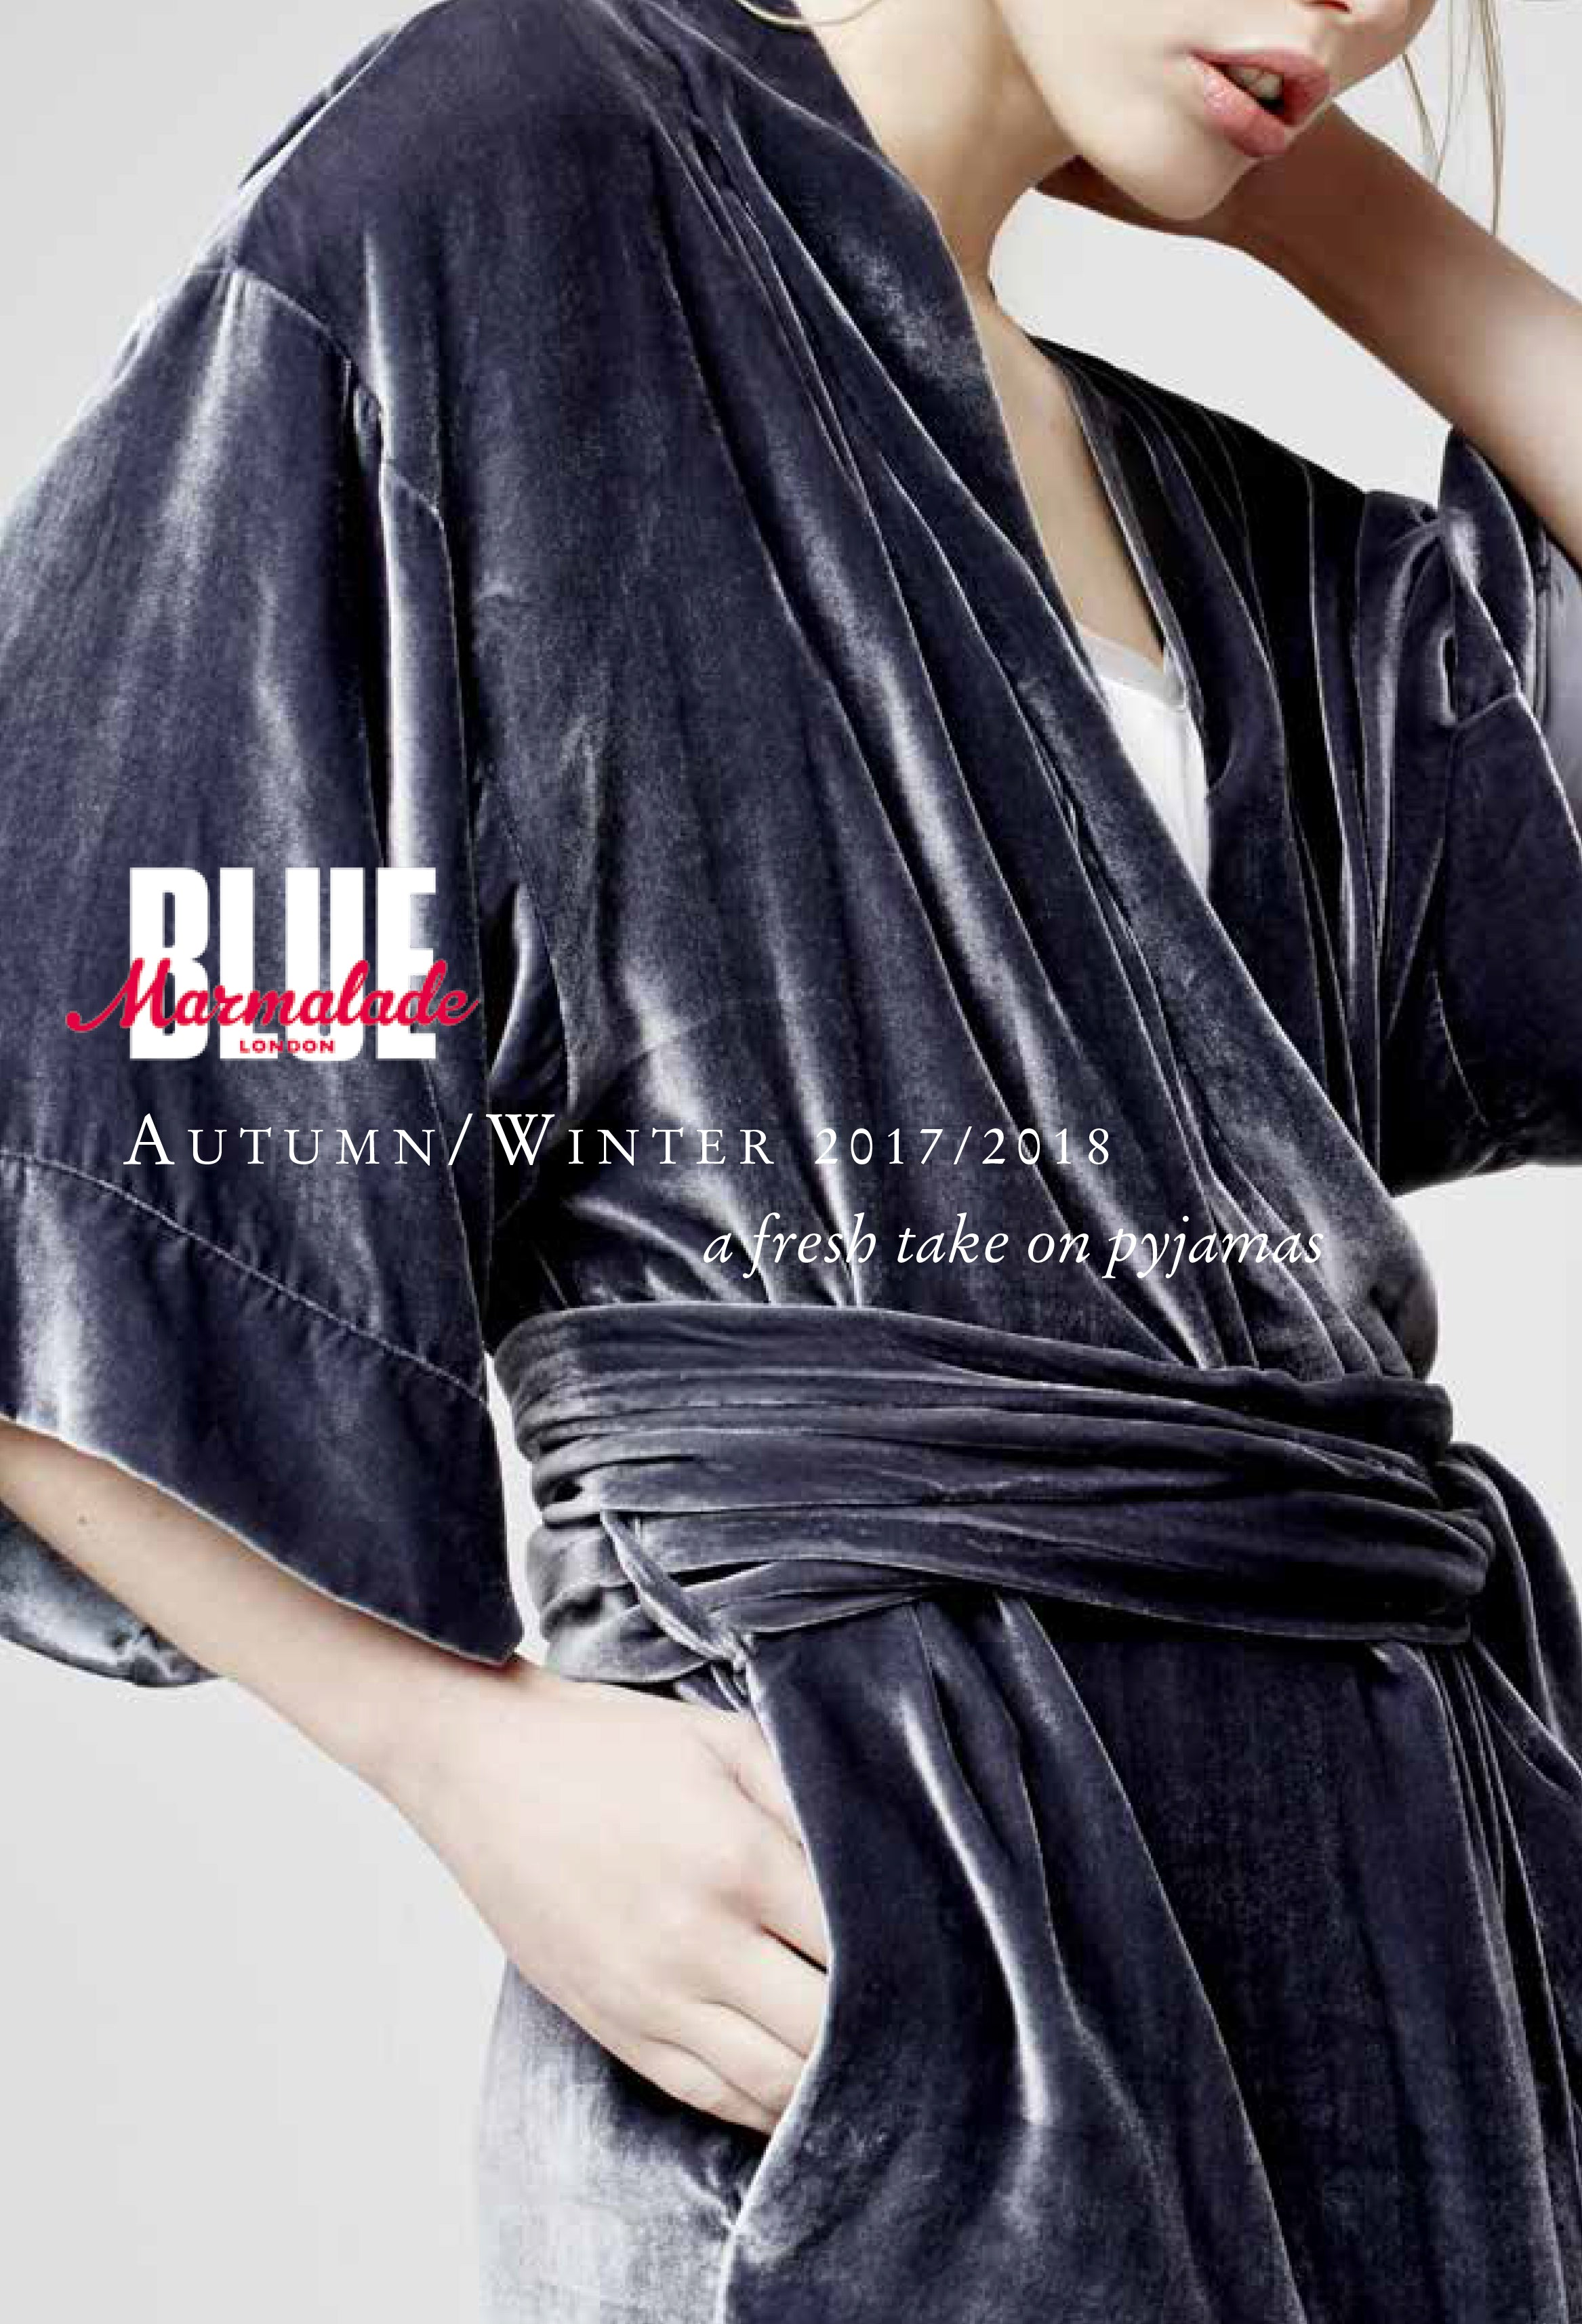 Blue Marmalade Autumn / Winter Collection Coming Soon